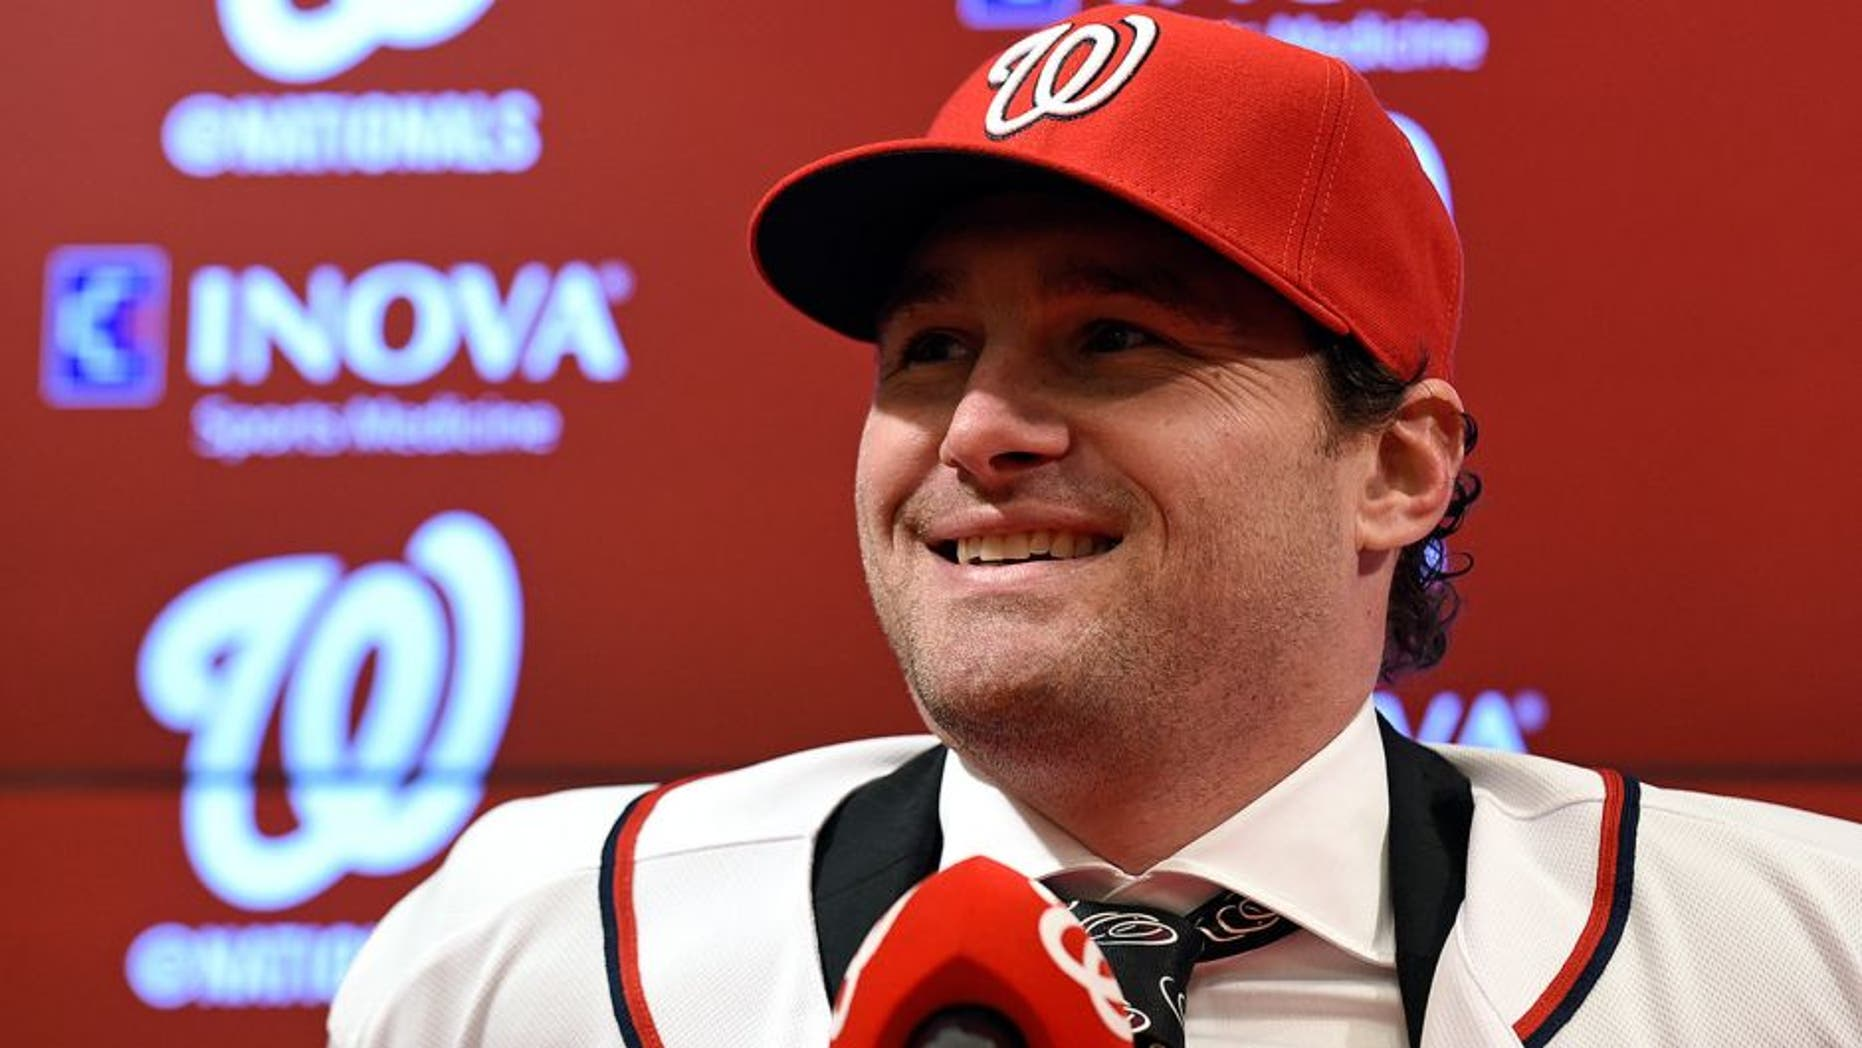 New Washington Nationals infielder Daniel Murphy speaks during a news conference at Nationals Park in Washington, Thursday, Jan. 7, 2016. Murphy's three-year contract with the Nationals will cost the team only $8 million in 2016. (AP Photo/Susan Walsh)